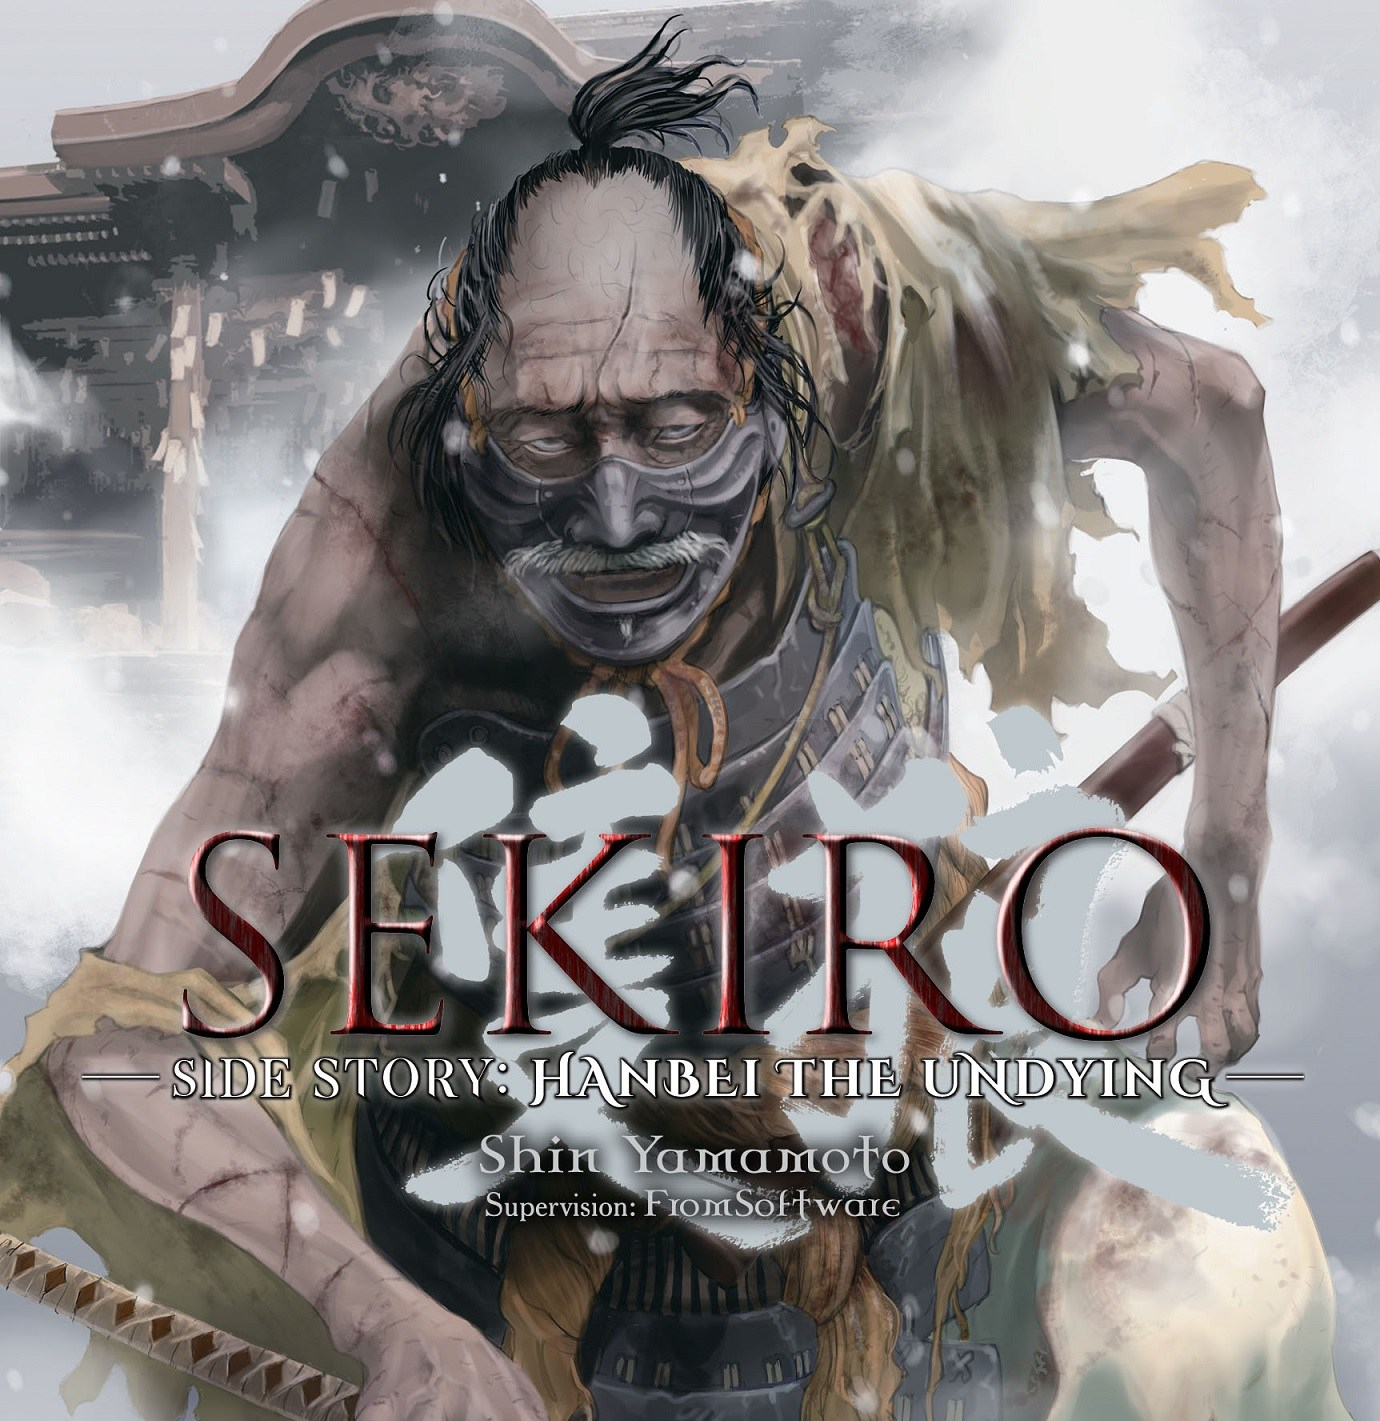 Sekiro Side Story: Hanbei the Undying